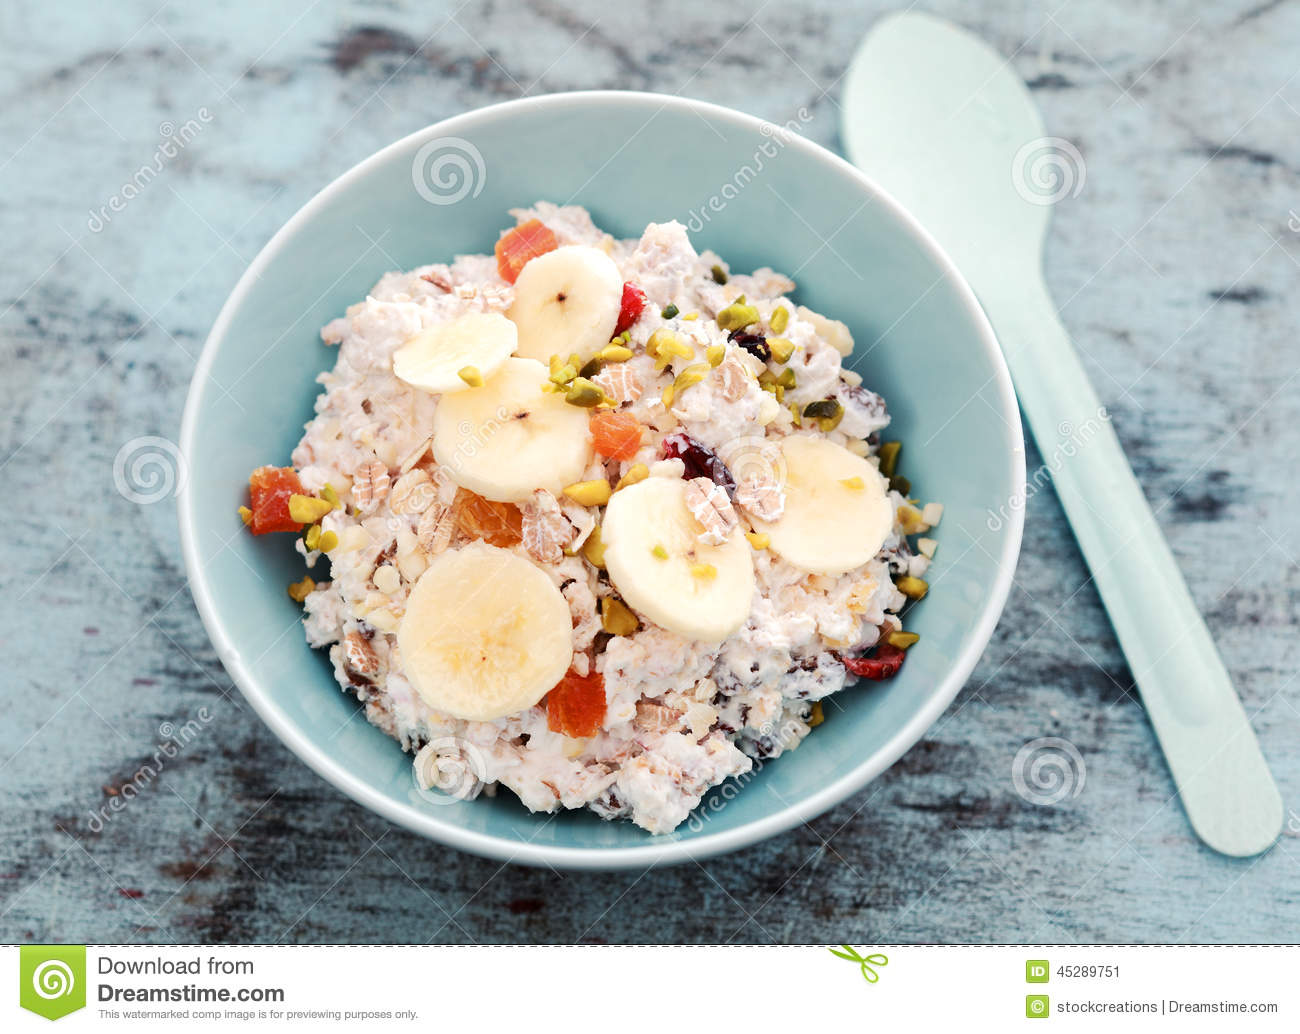 Delicious bowl of muesli with fruit and nuts